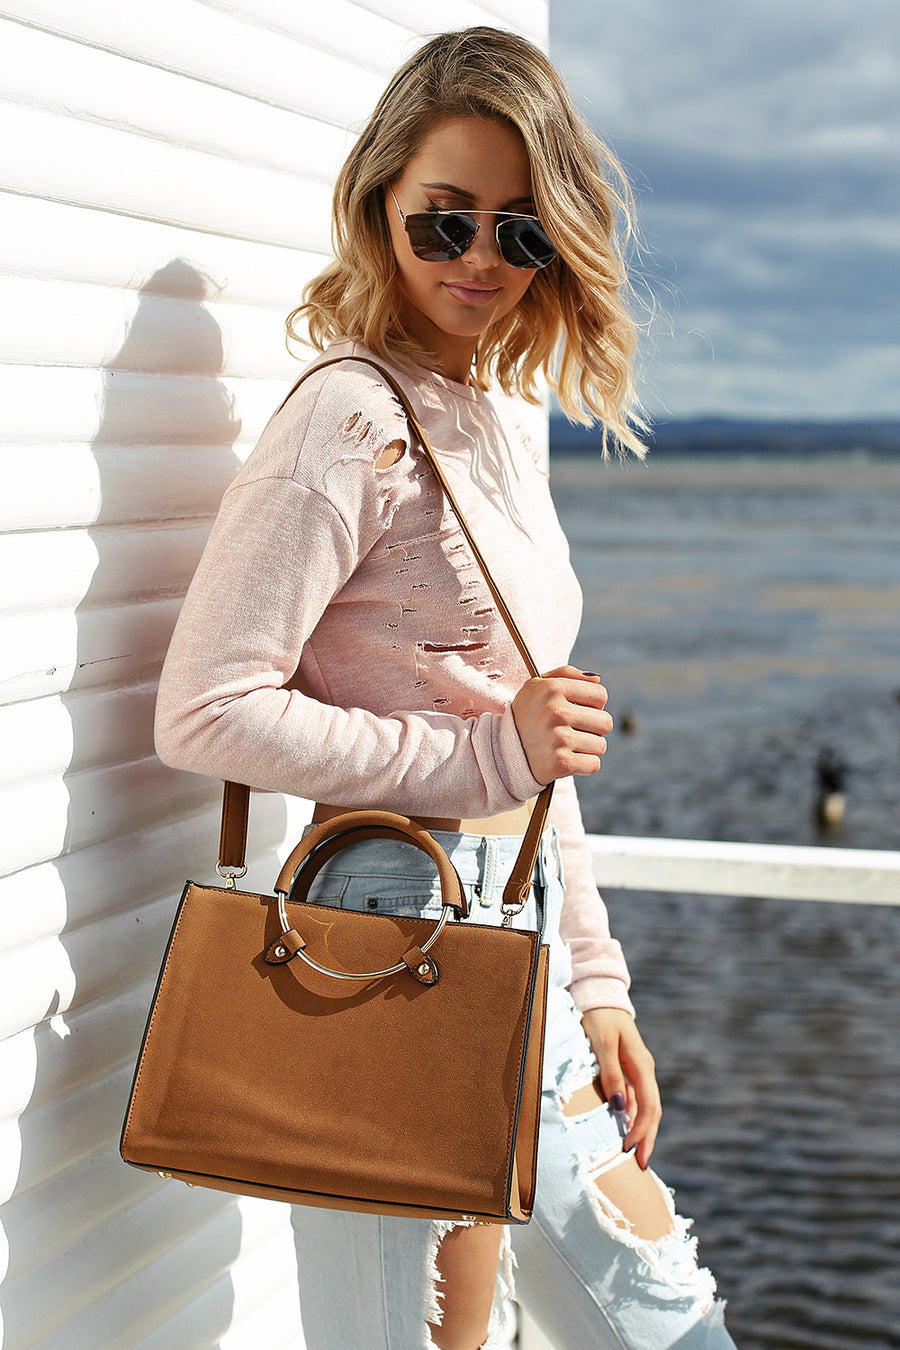 Berkley Bag in Caramel